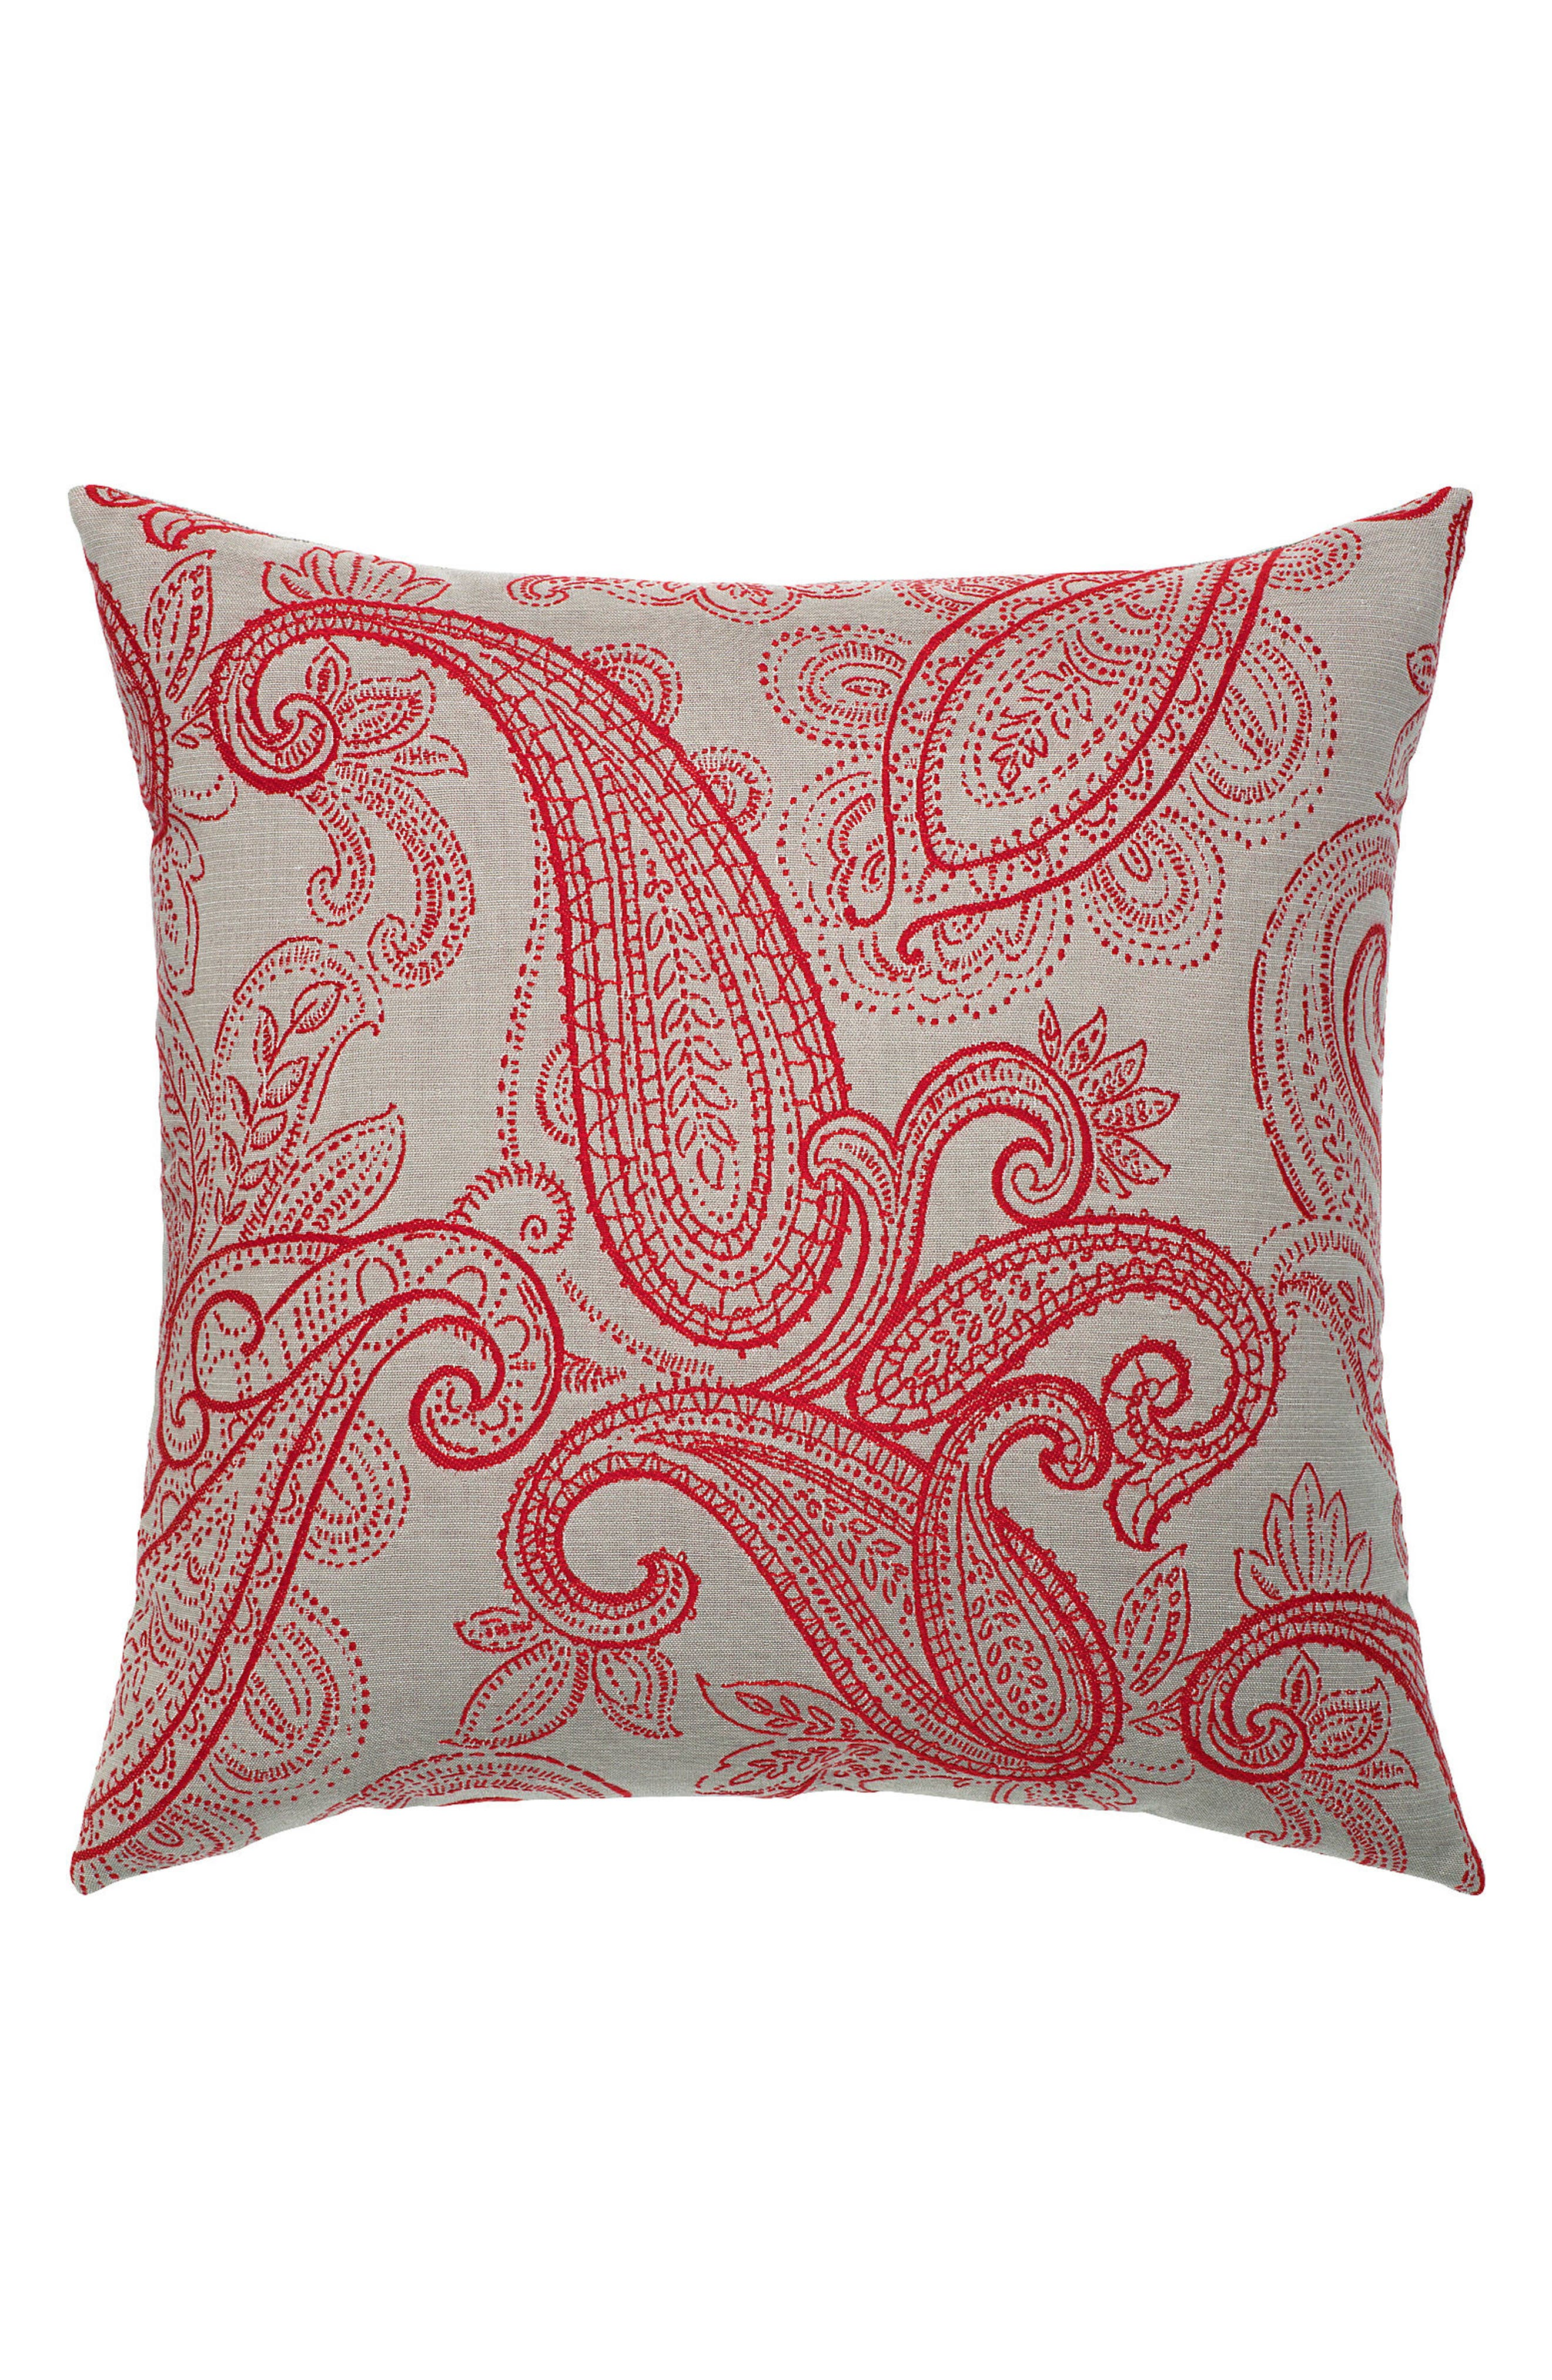 Polished Paisley Indoor/Outdoor Accent Pillow,                         Main,                         color, Red/ Grey